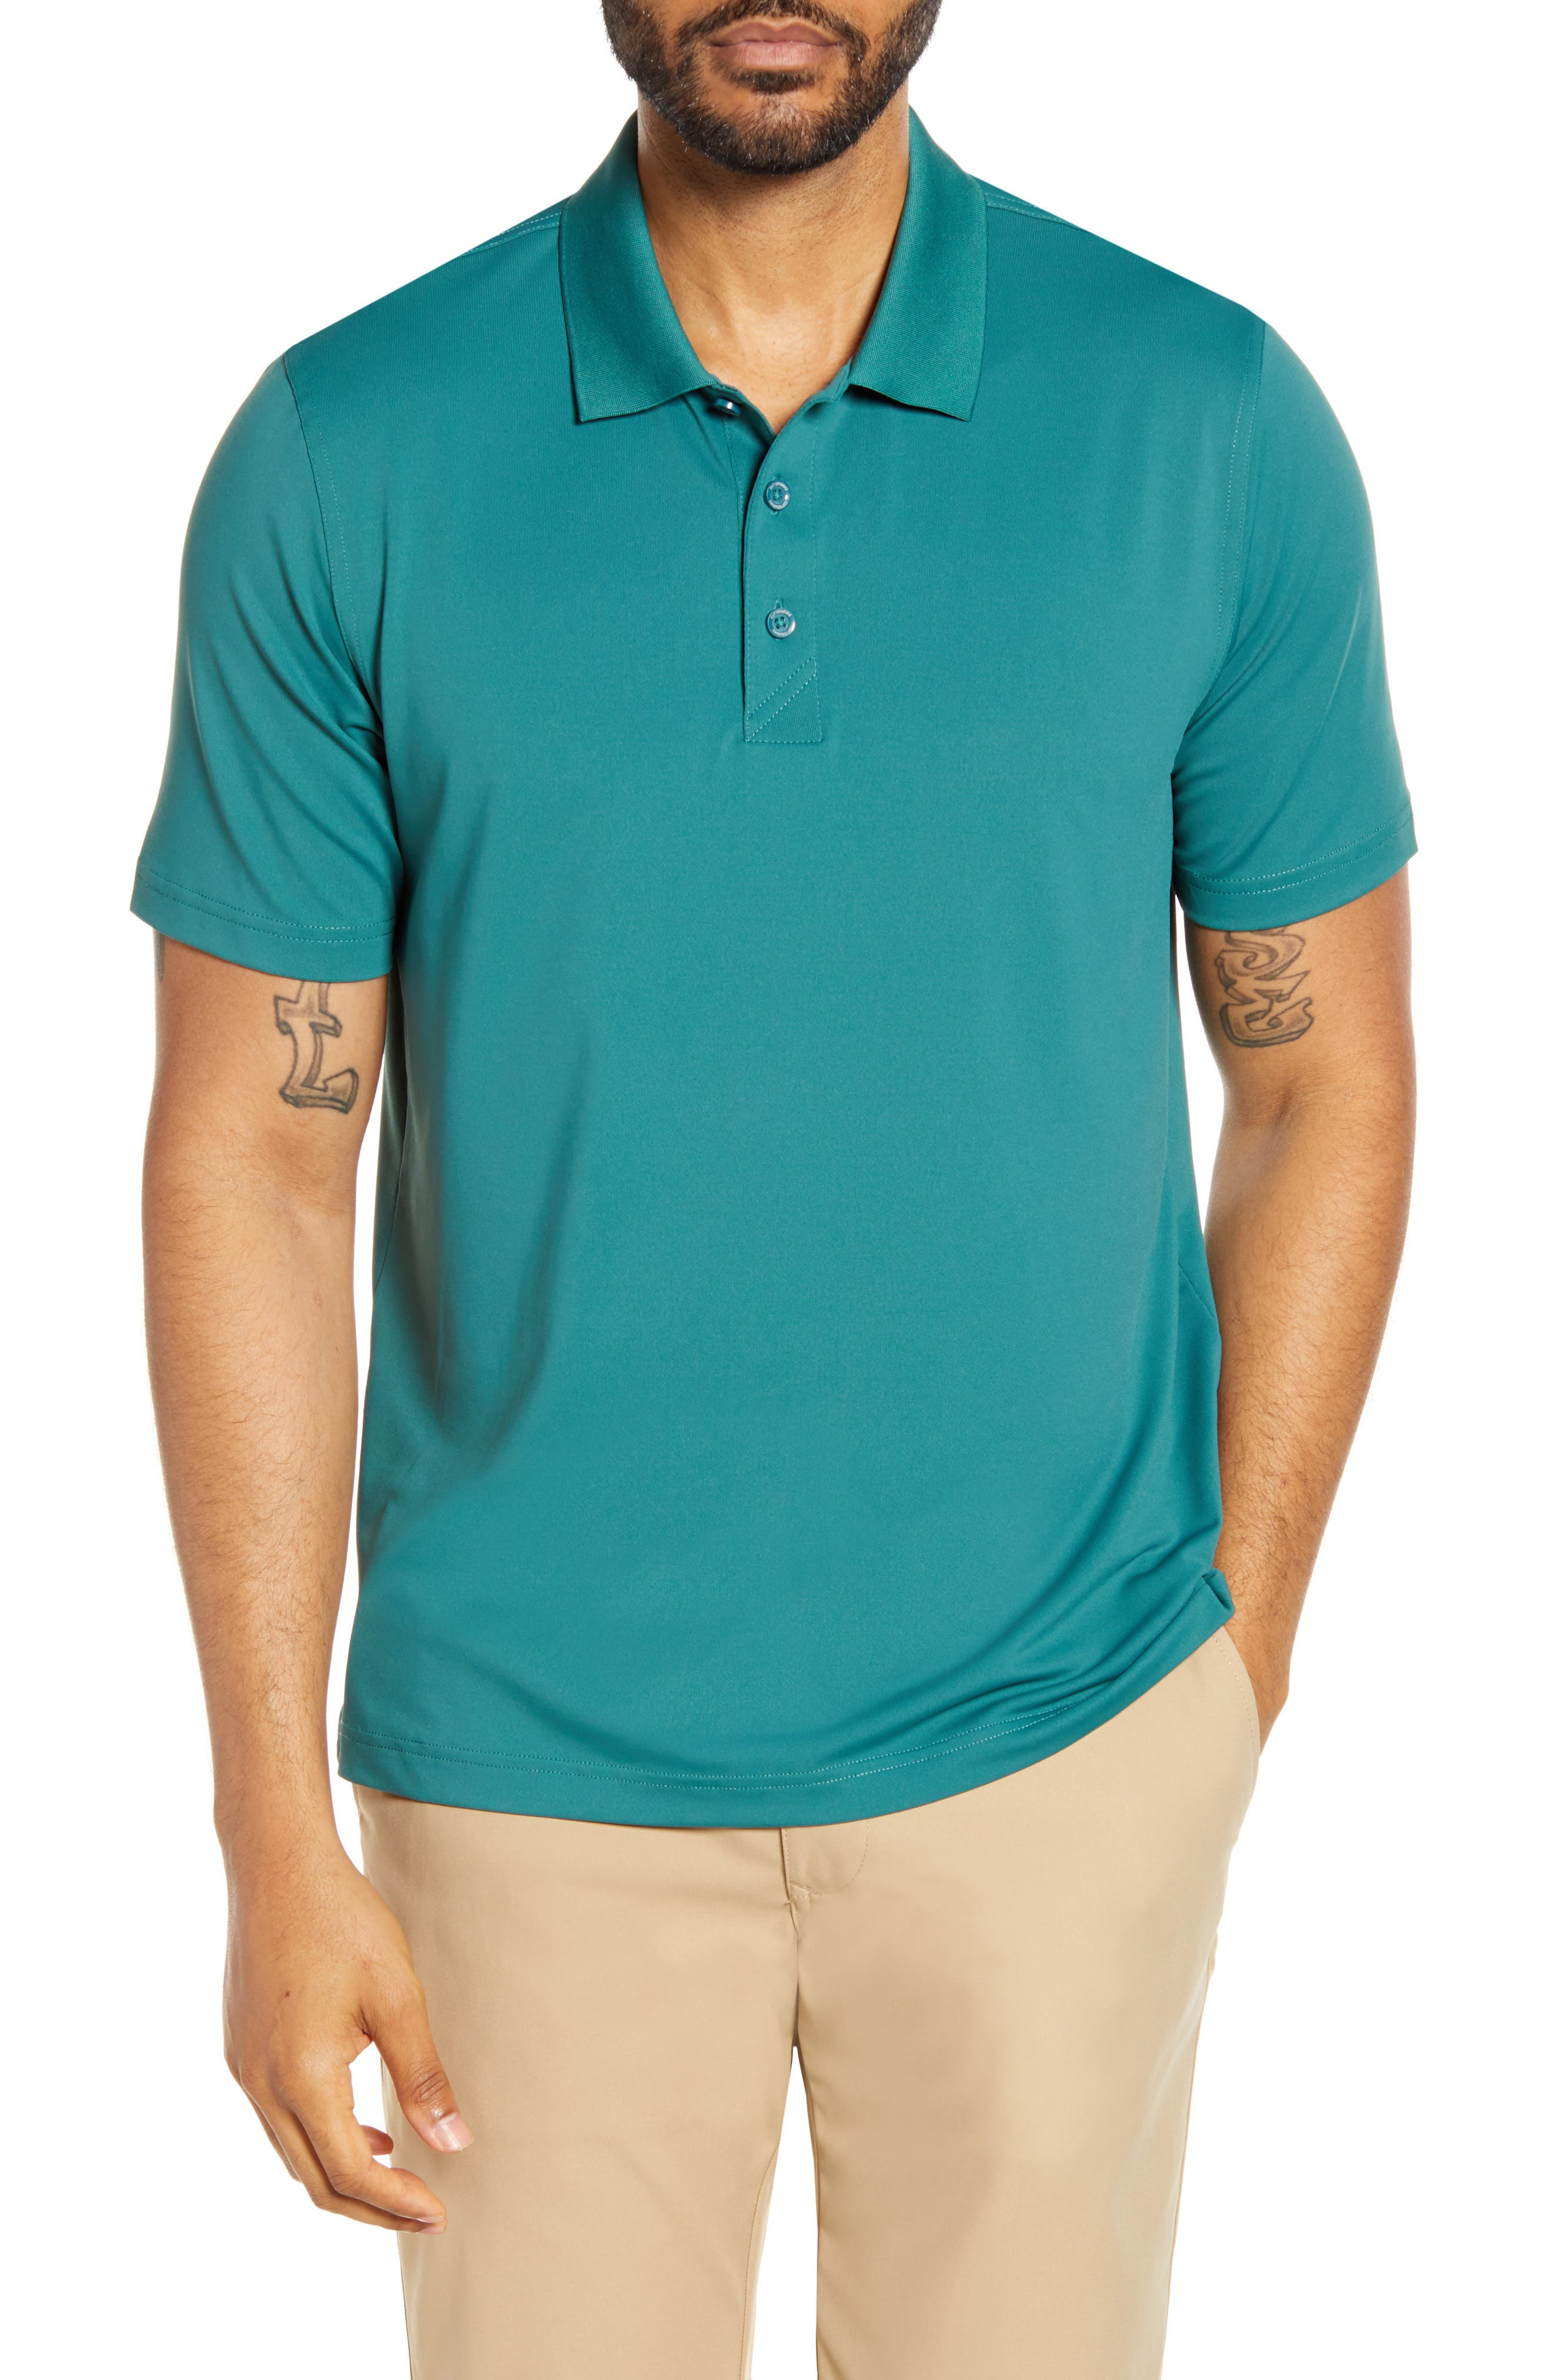 Forge Drytec Solid Performance Polo